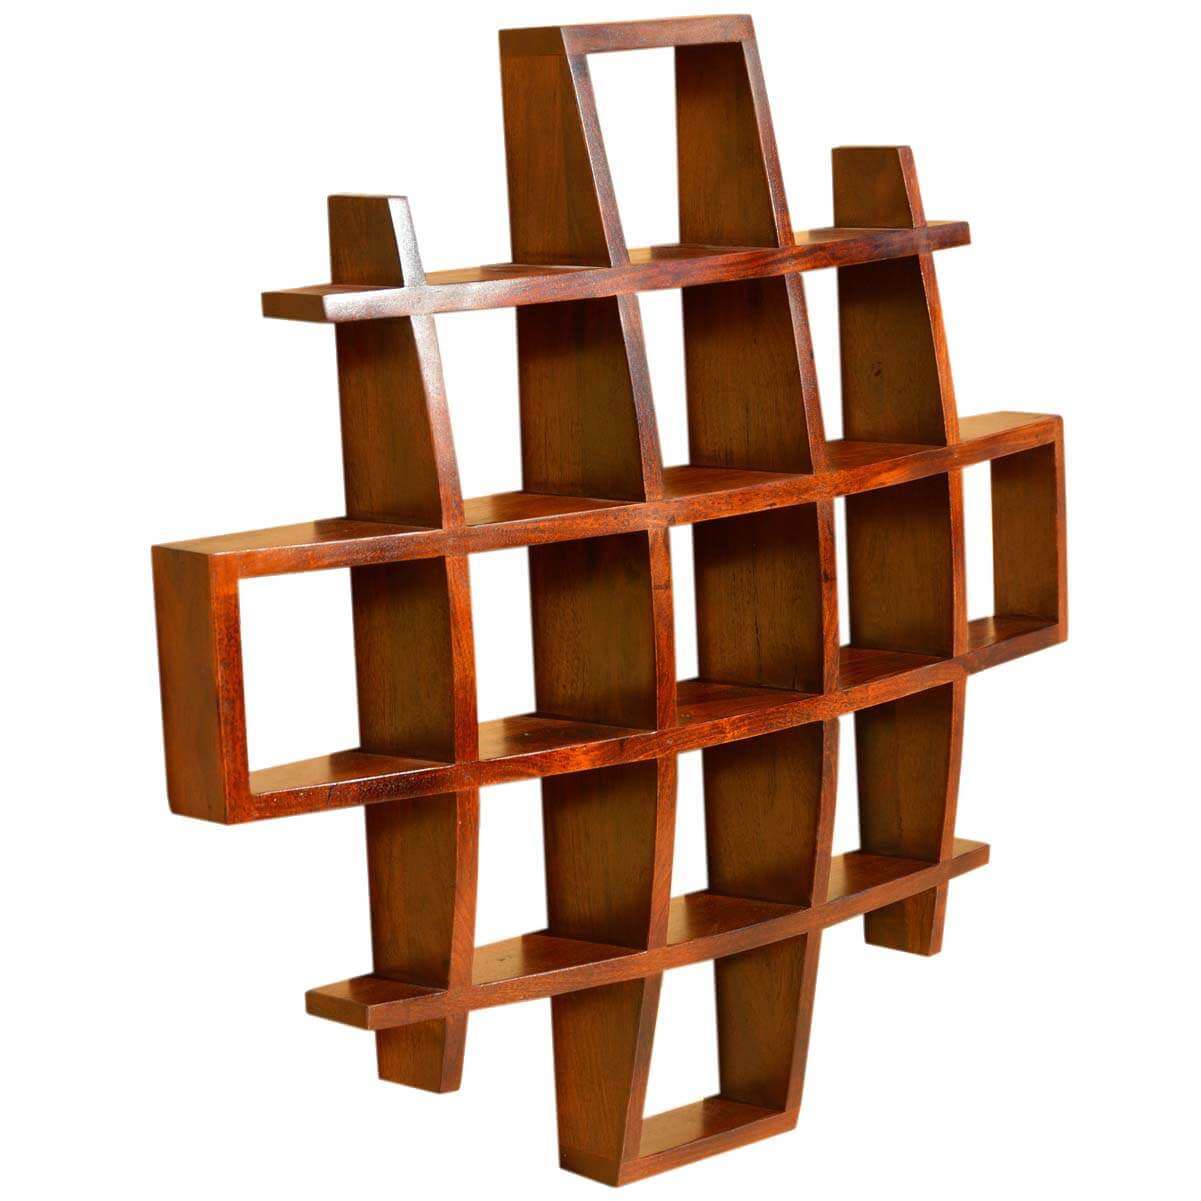 Contemporary wood display wall hanging shelves home decor for Home decor wall hanging